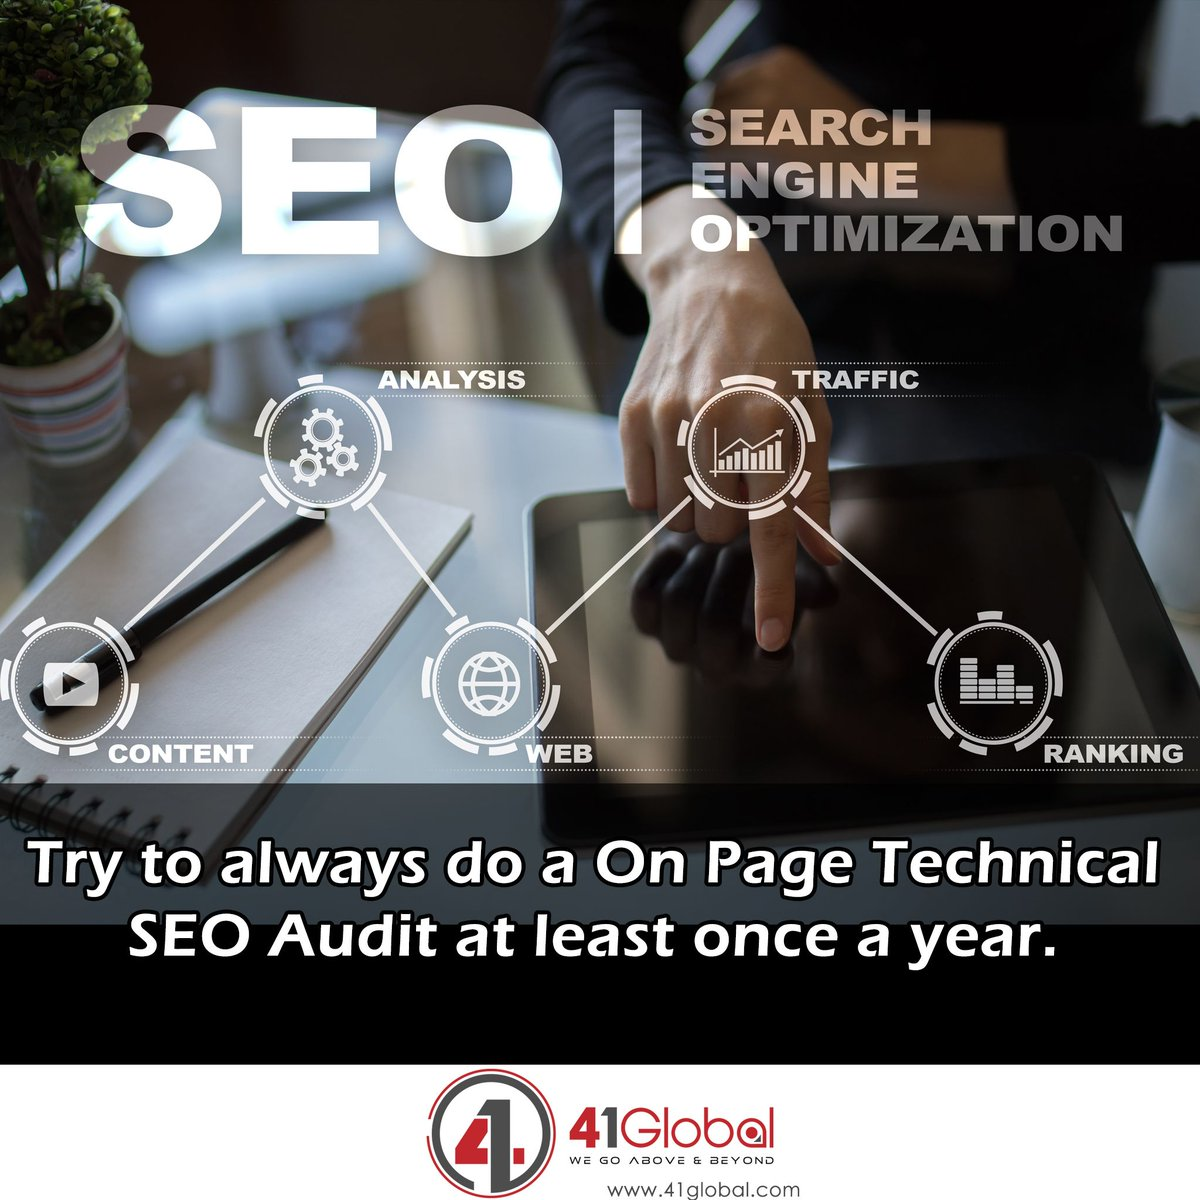 SEO Tip! Performing a on page technical audit on your site will allow you to see check and confirm title tag, header tag, description tag and images are correctly optimized for search engines. #41Global #website #webdevelopment #marketing101 #webdesign #webdesigner #seo